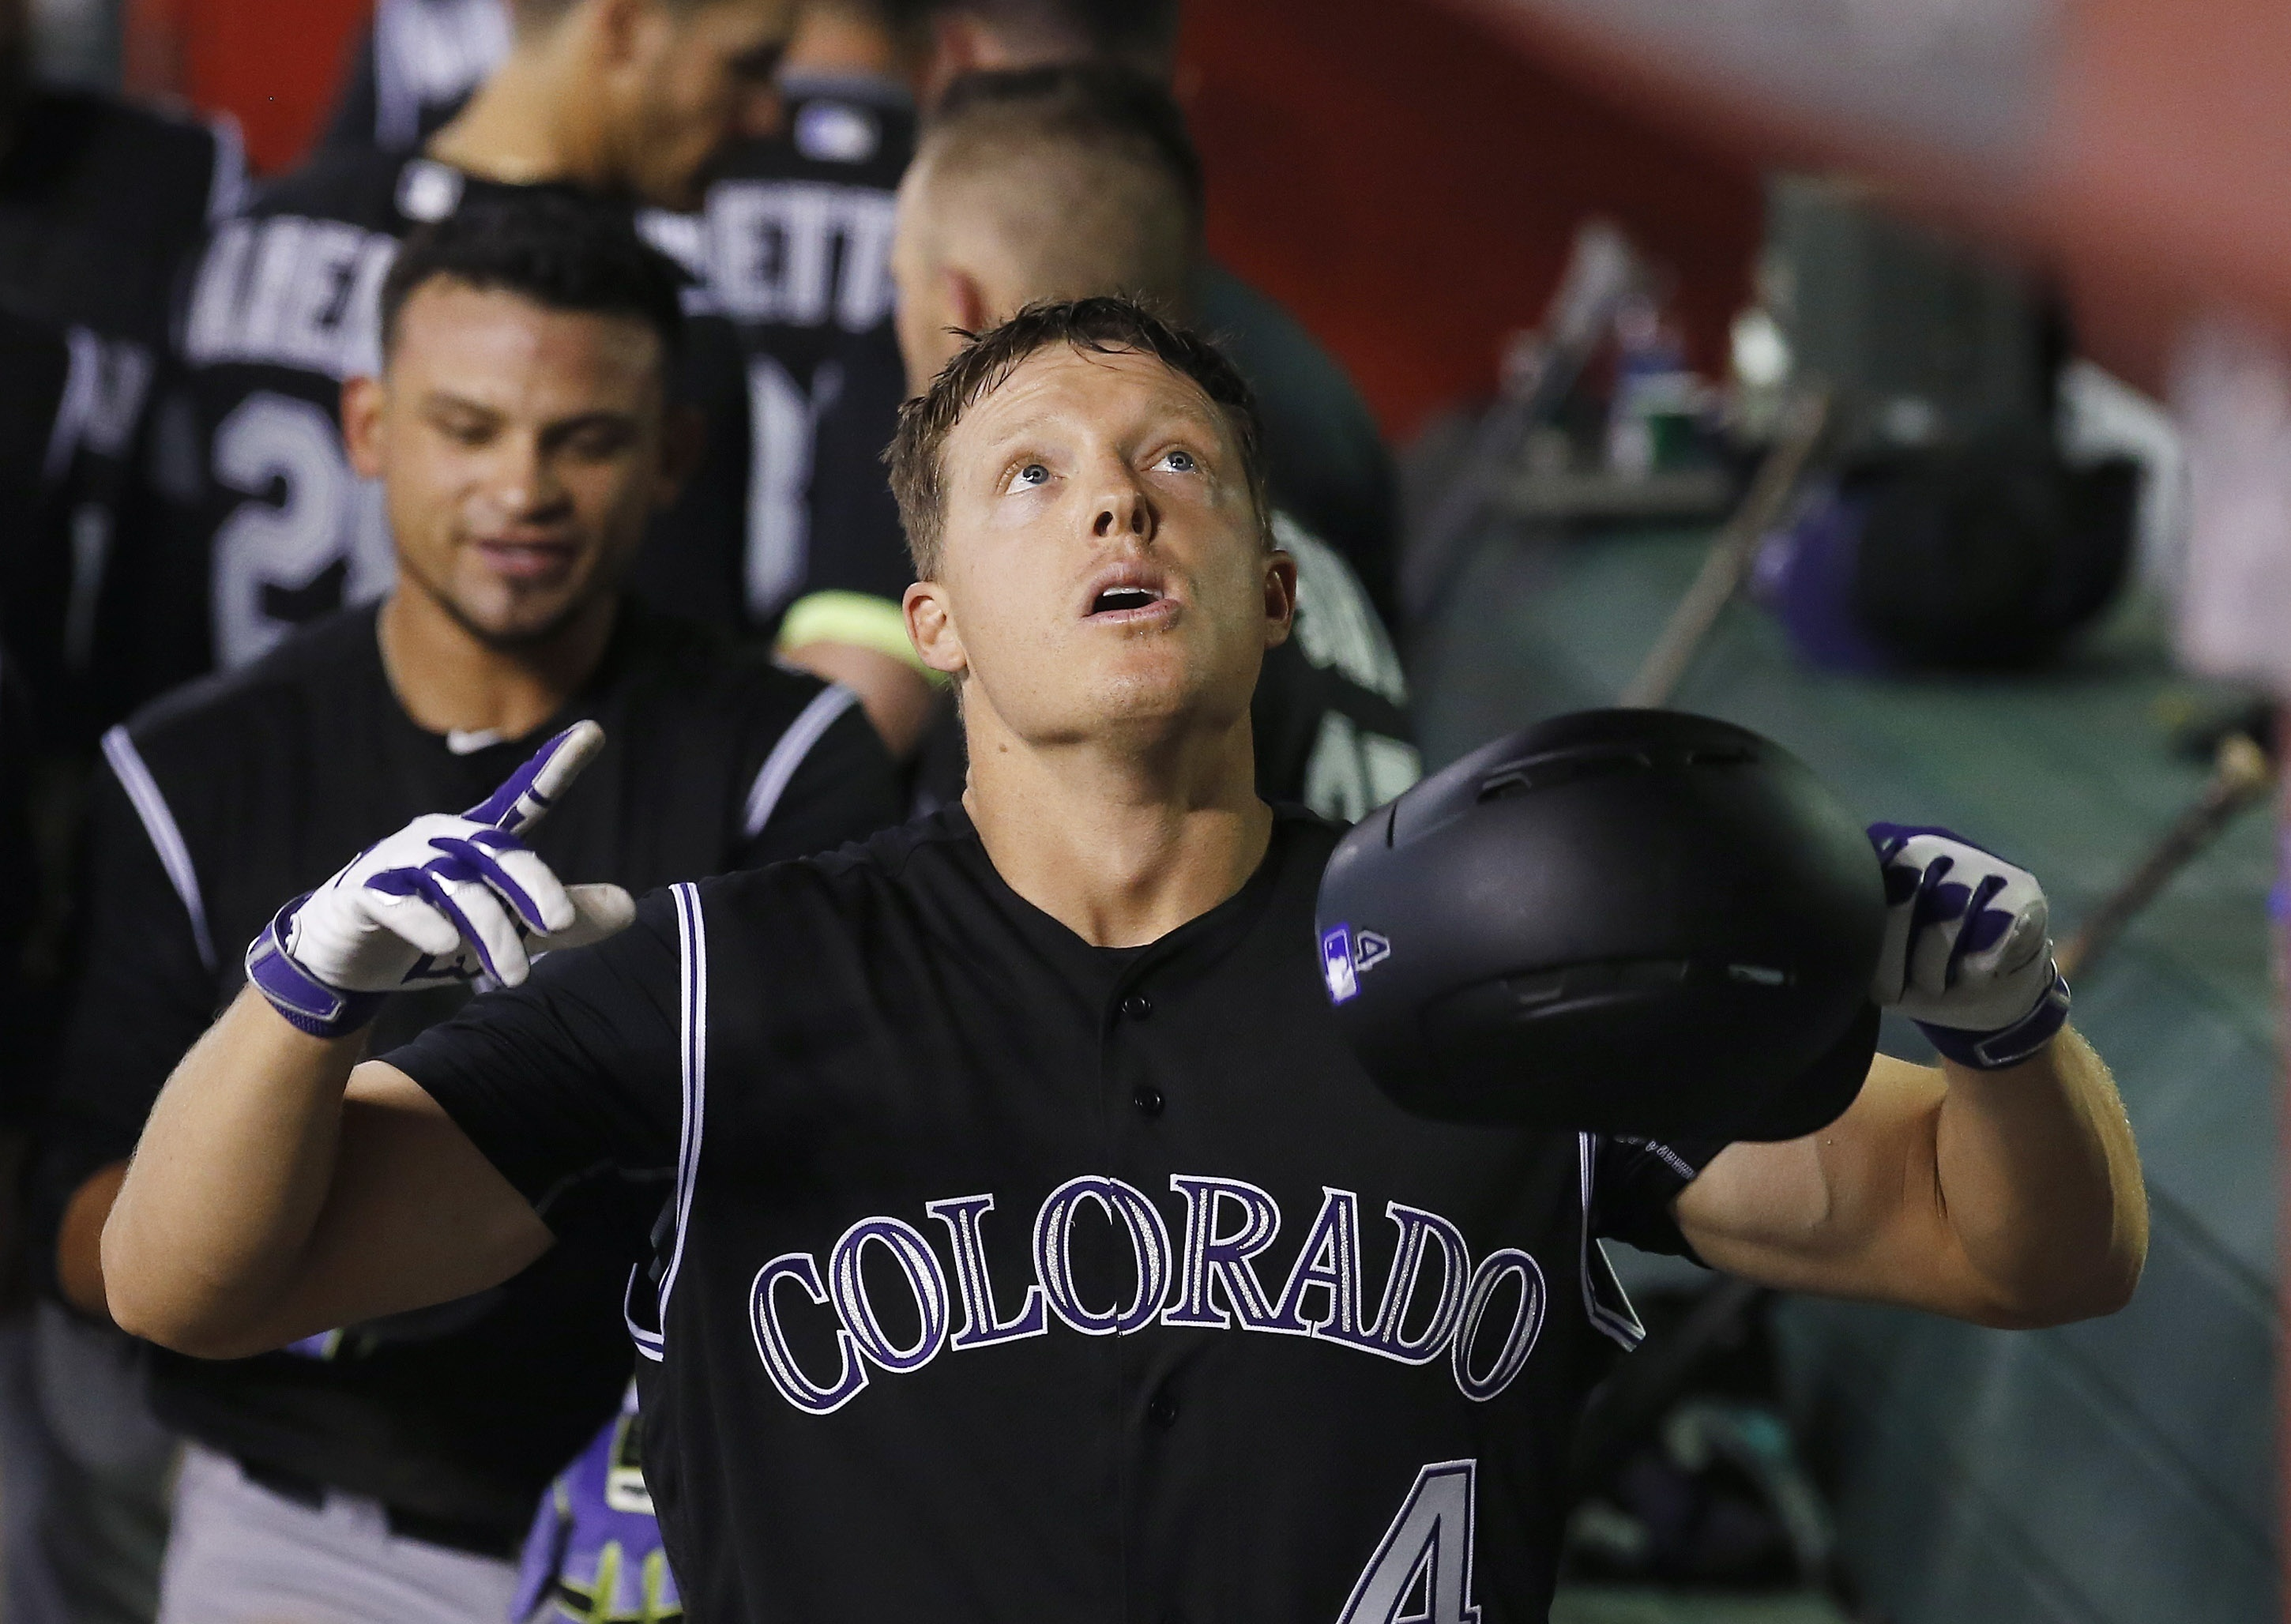 Colorado Rockies' Nick Hundley looks up as he celebrates his three-run home run against the Arizona Diamondbacks during the fourth inning of a baseball game Tuesday, April 5, 2016, in Phoenix. (AP Photo/Ross D. Franklin)